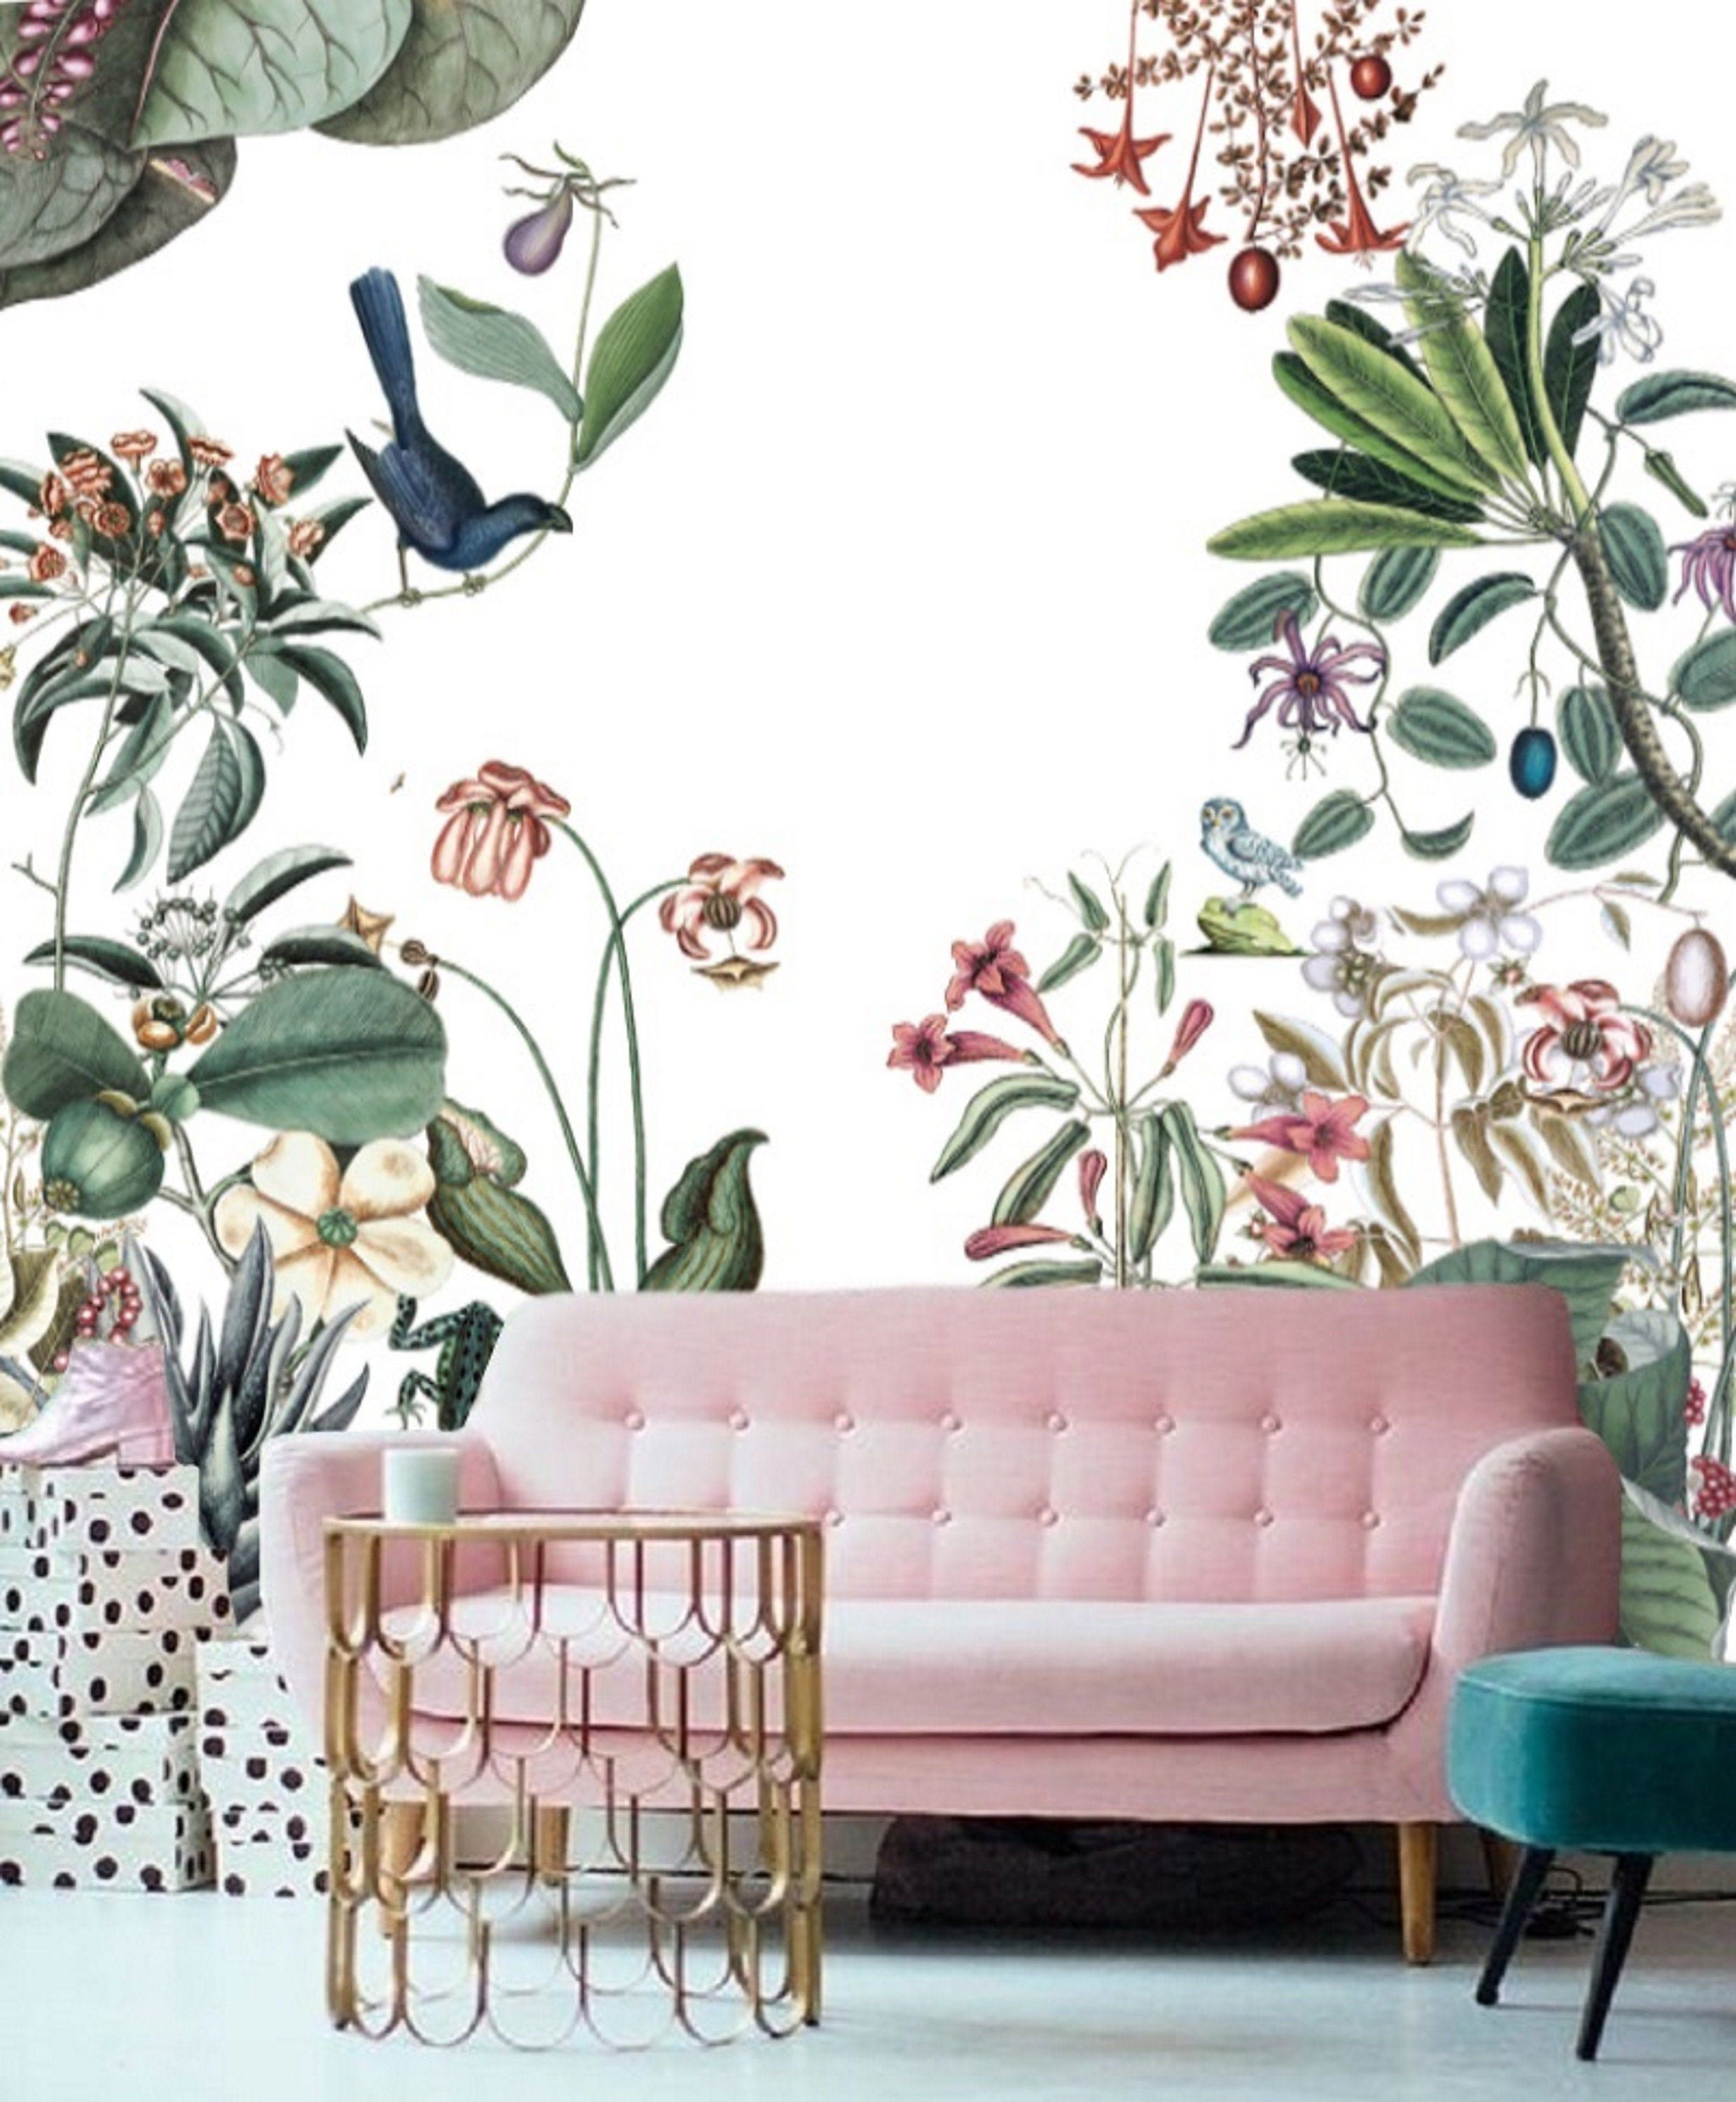 Wall Paper Large Floral Wallpaper Mural Remove Wallpaper Peel Etsy Large Floral Wallpaper Mural Wallpaper Wall Wallpaper